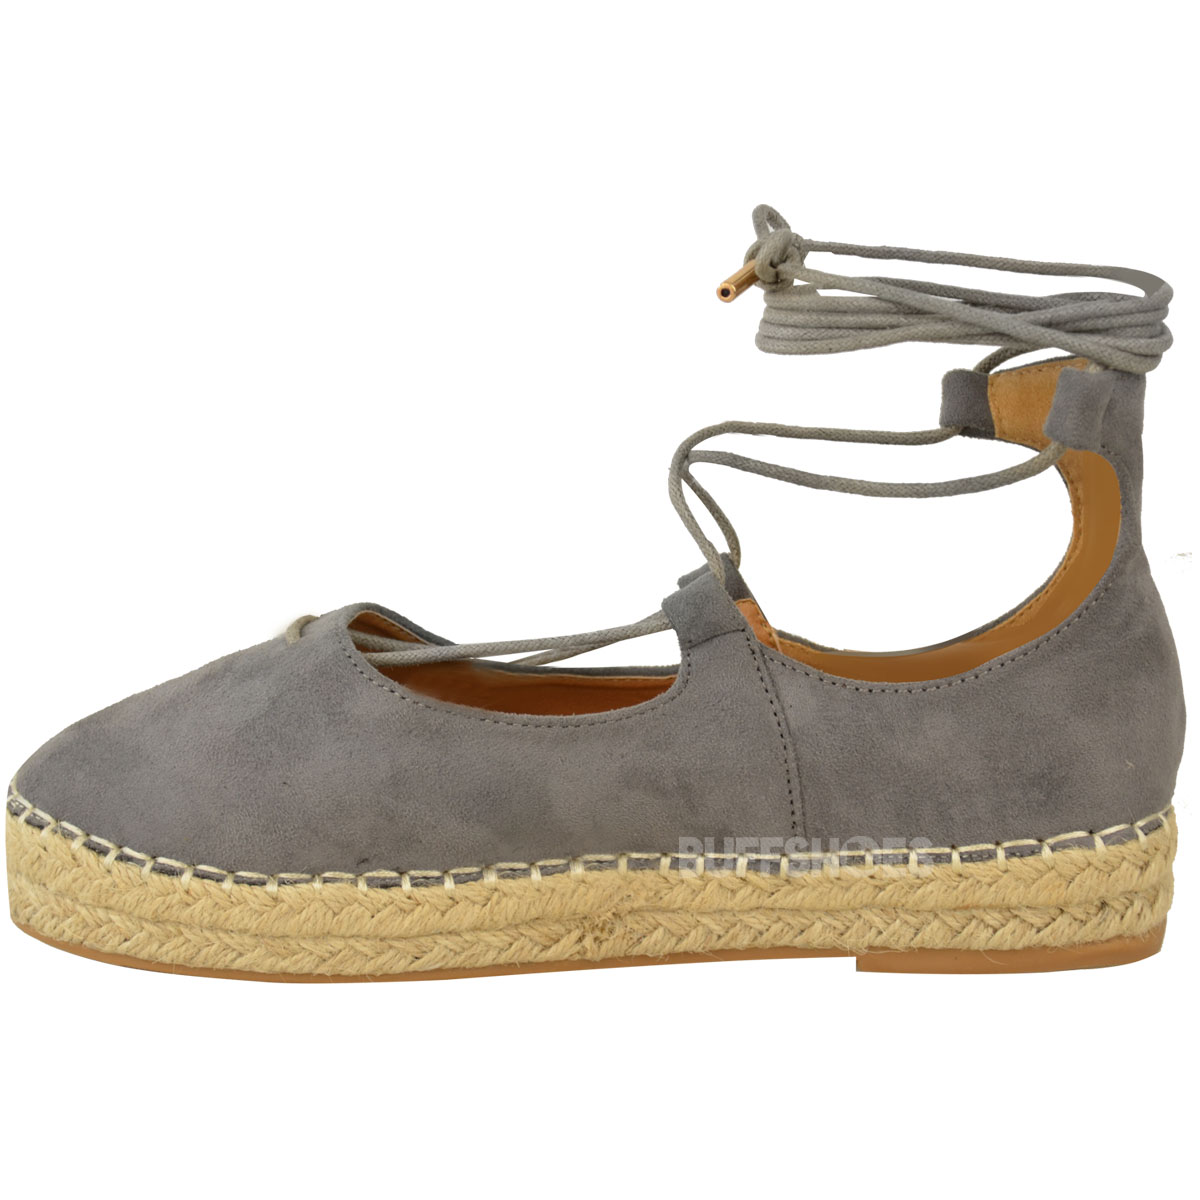 db16c45963253 New Womens Ladies Lace Up Strappy Low Flat Canvas Wedge Espadrilles ...